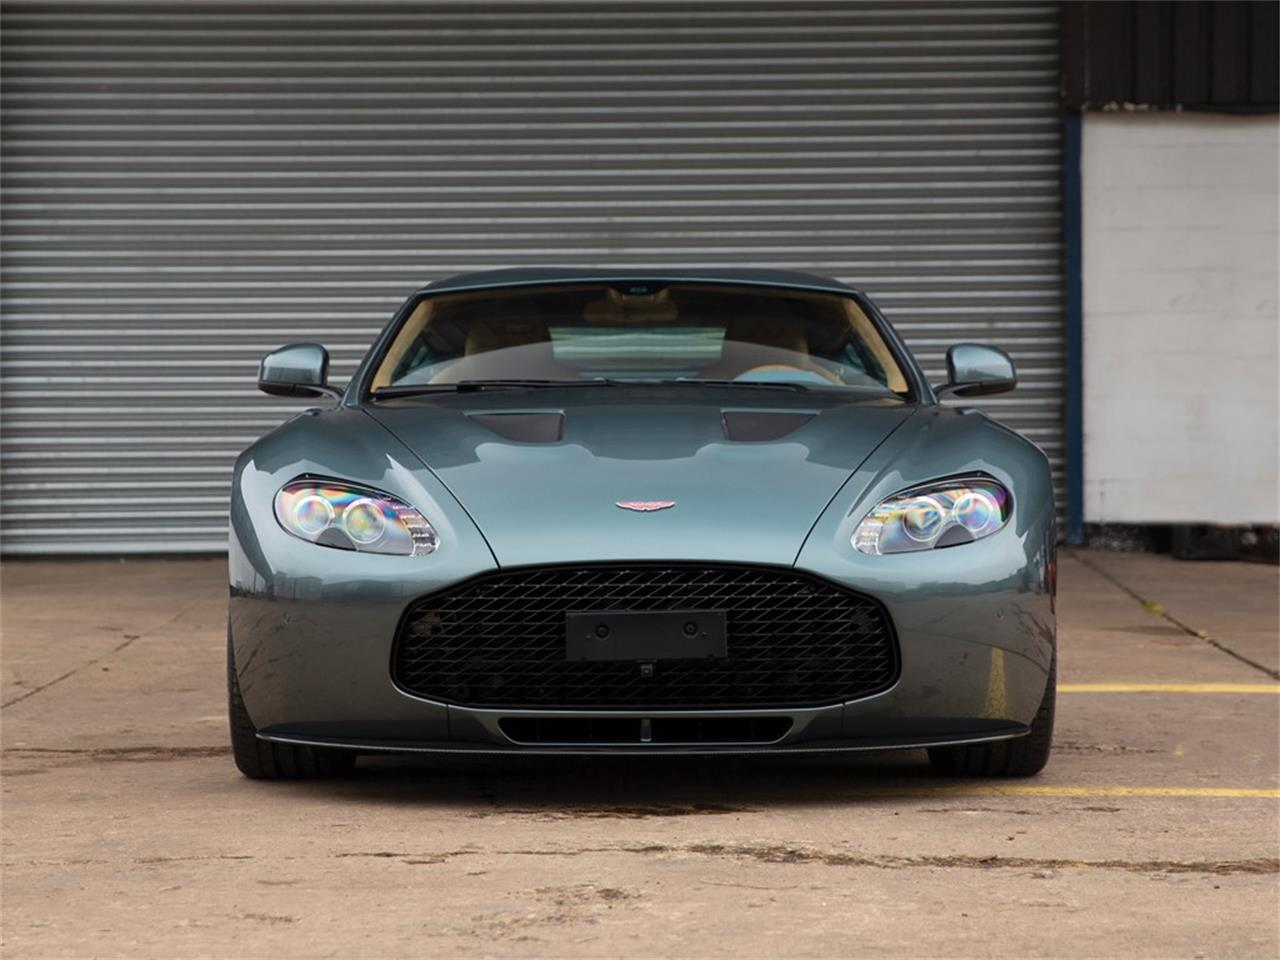 Large Picture of 2012 Aston Martin V12 Zagato Auction Vehicle Offered by RM Sotheby's - Q37F